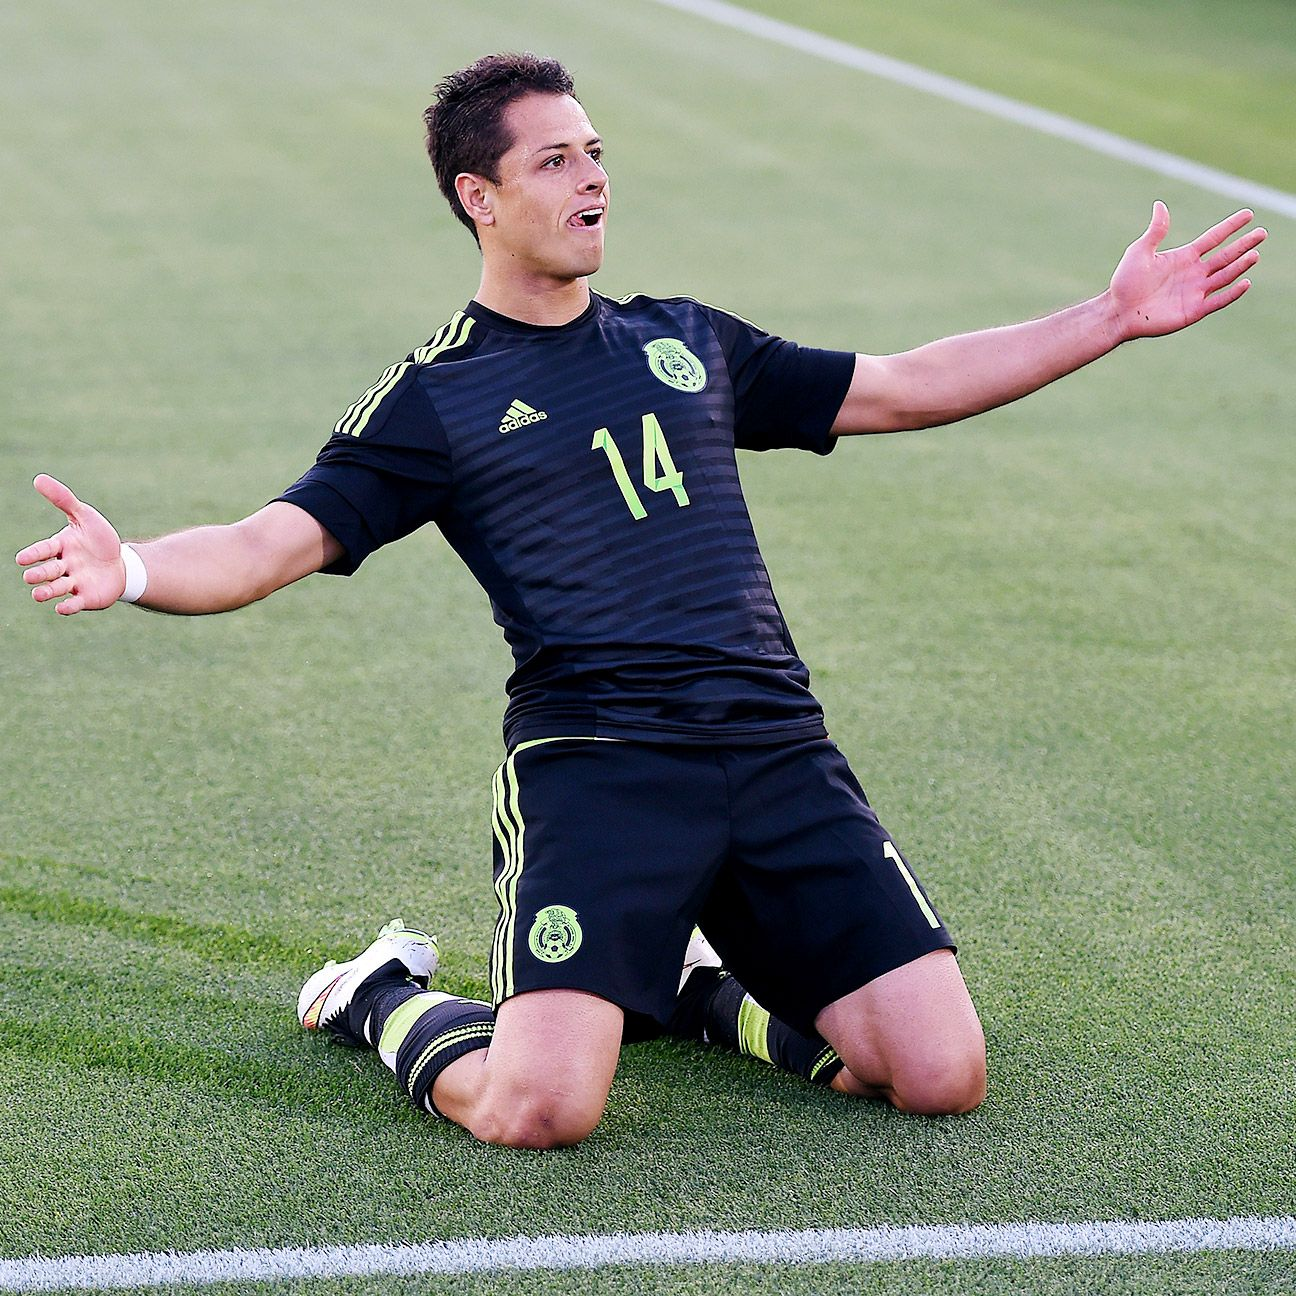 Chicharito Hernandez registered his first goal in competitive action since Mexico's 3-2 win over the Netherlands last November.